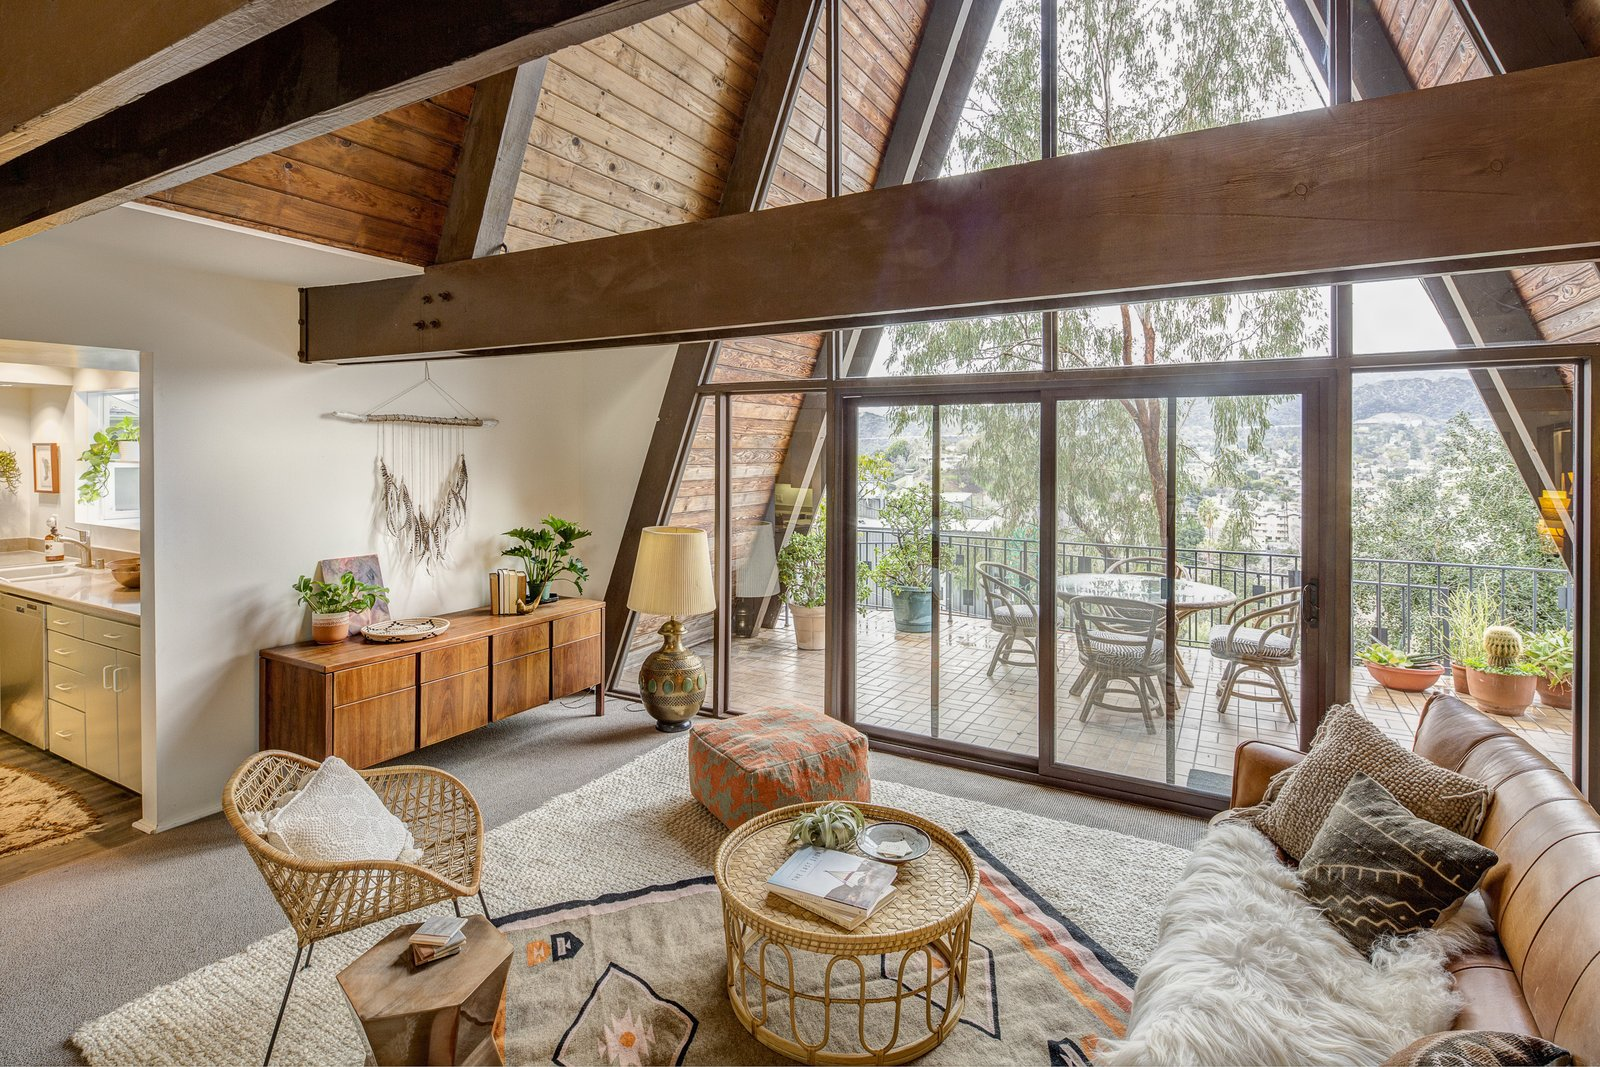 Photo 1 of 10 in A Modified A-Frame Overlooking Los Angeles Starts at $699K